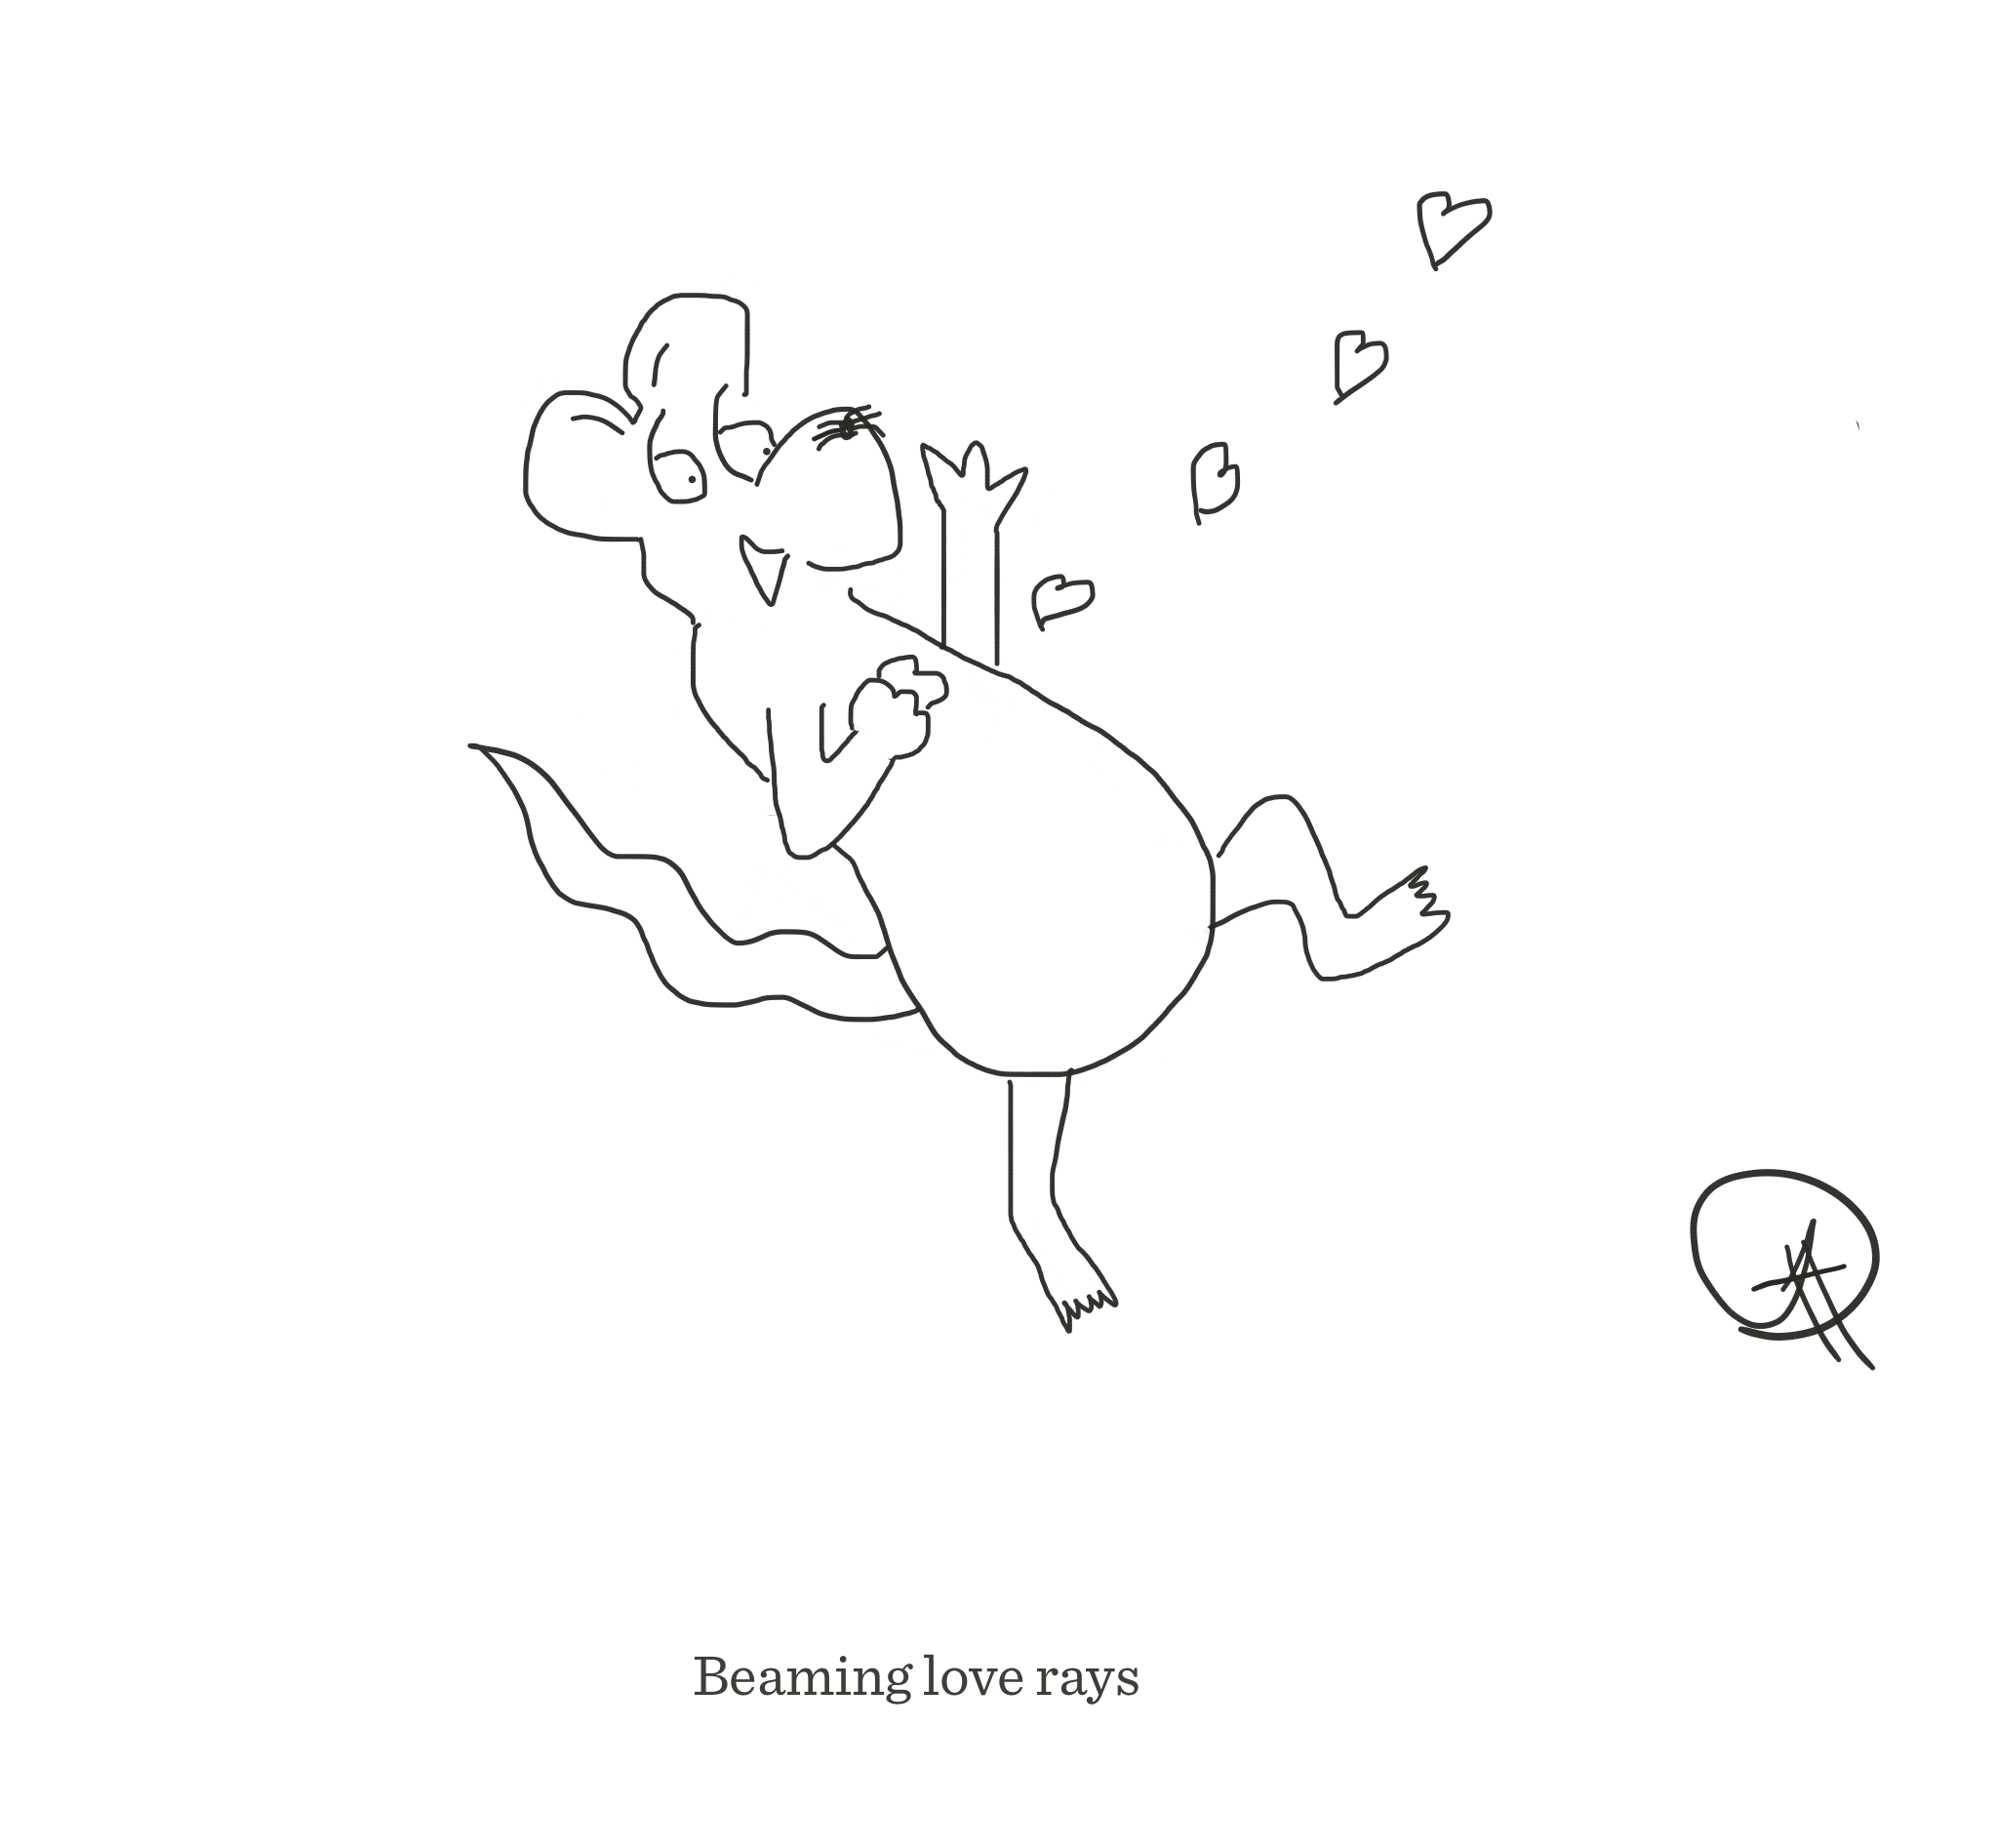 Beaming love rays, The Happy Rat cartoon